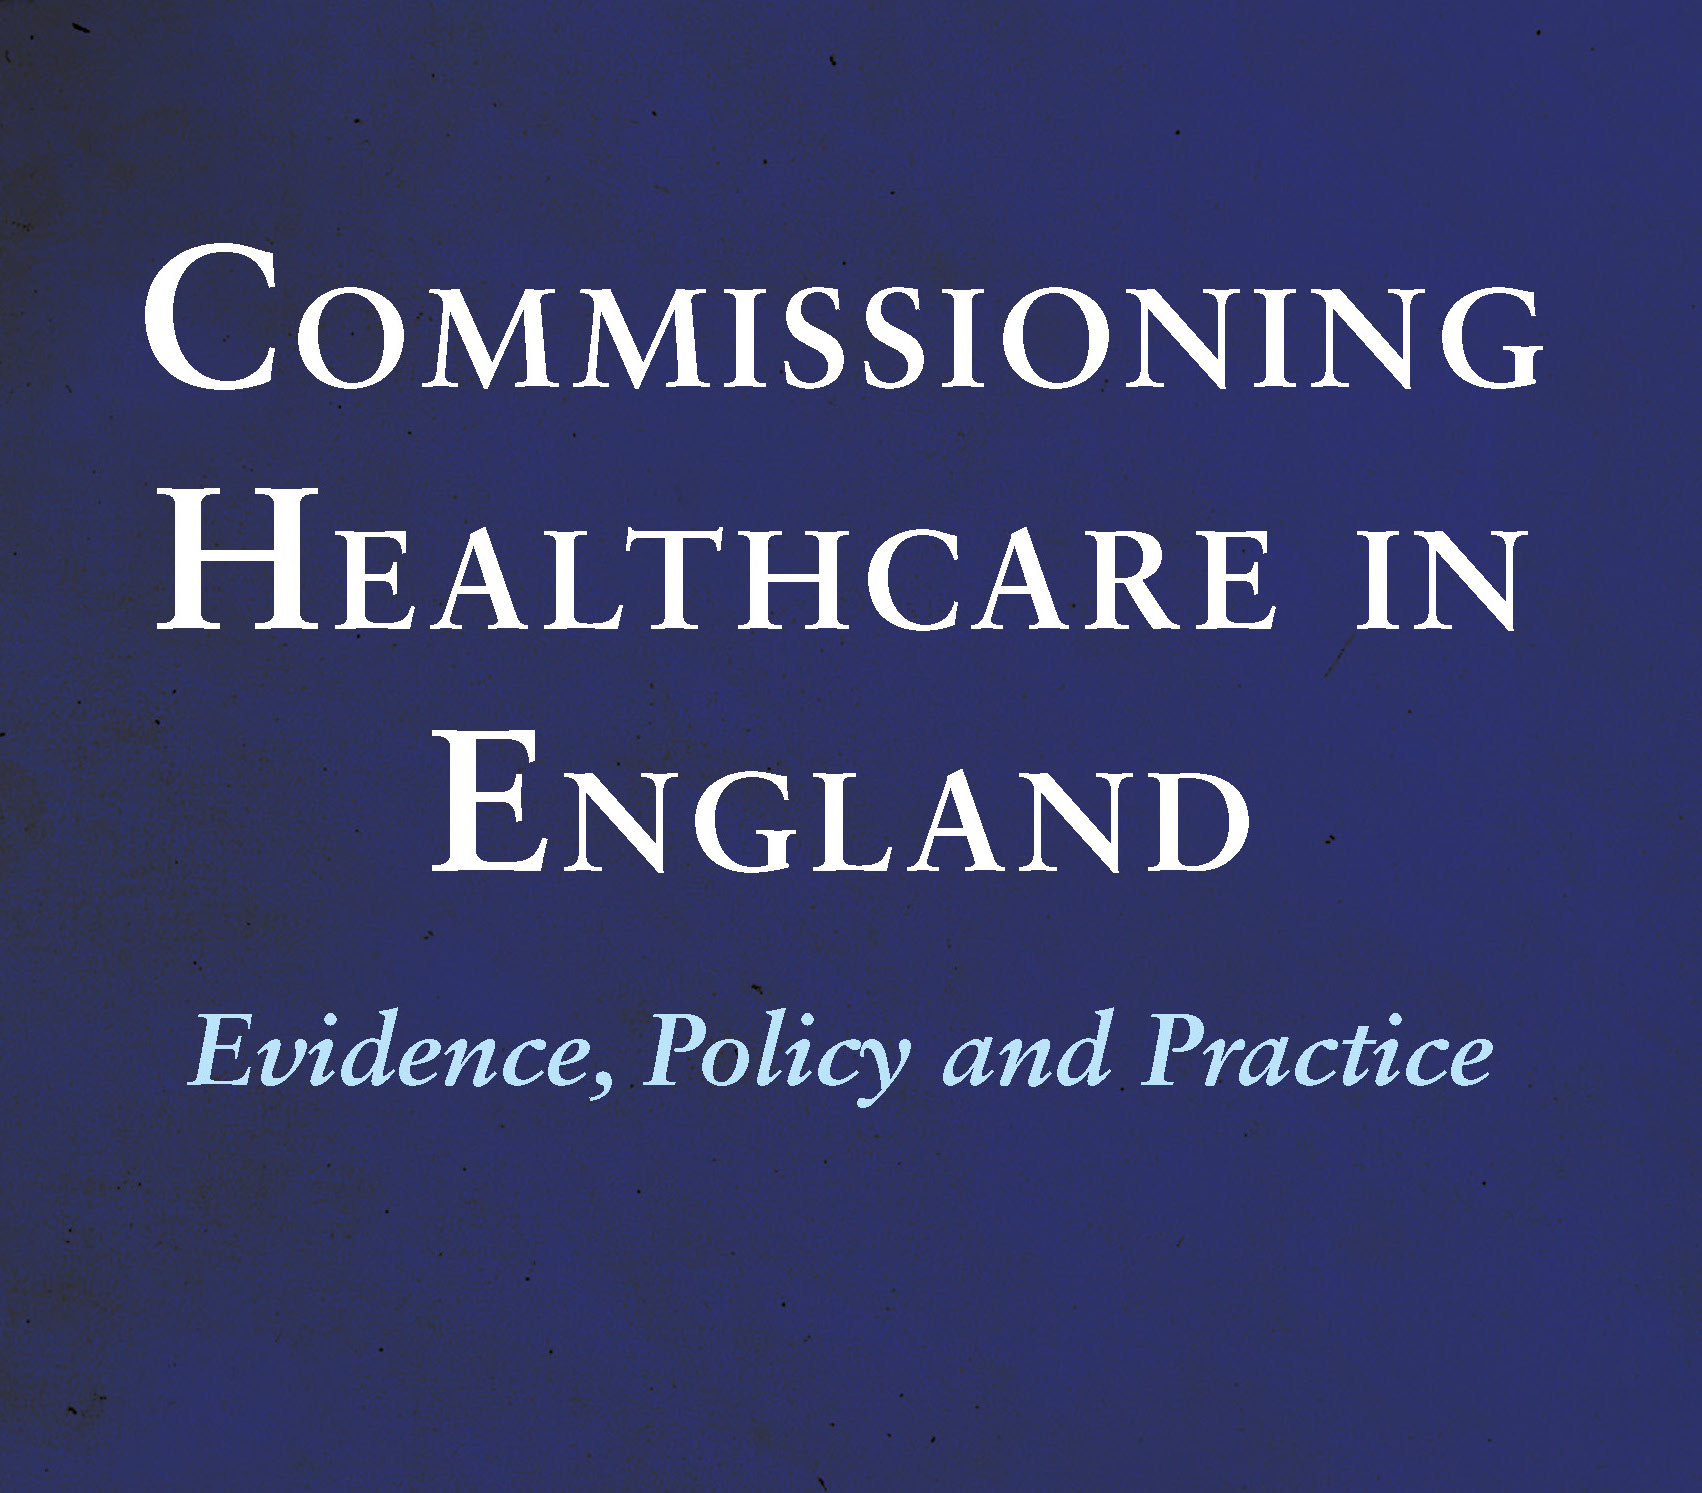 Commissioning Healthcare In England logo